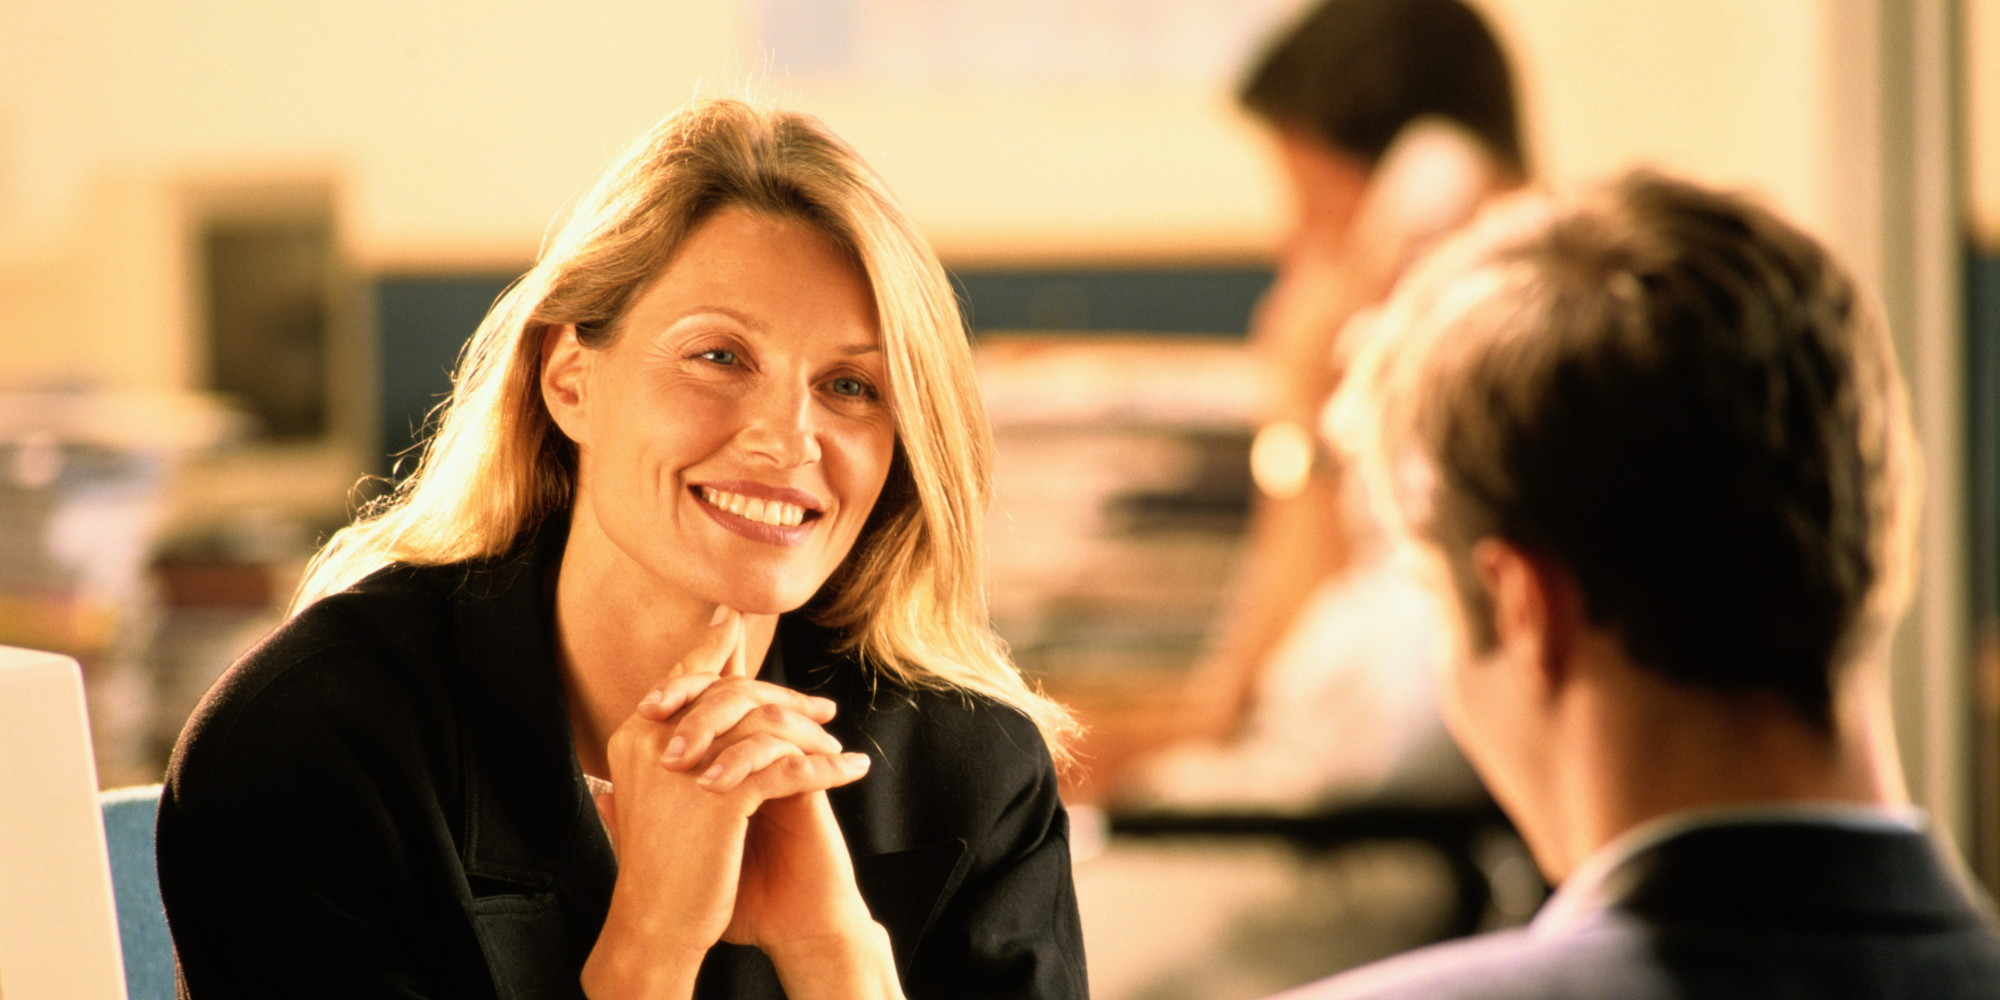 Businesswoman in discussion with male colleague